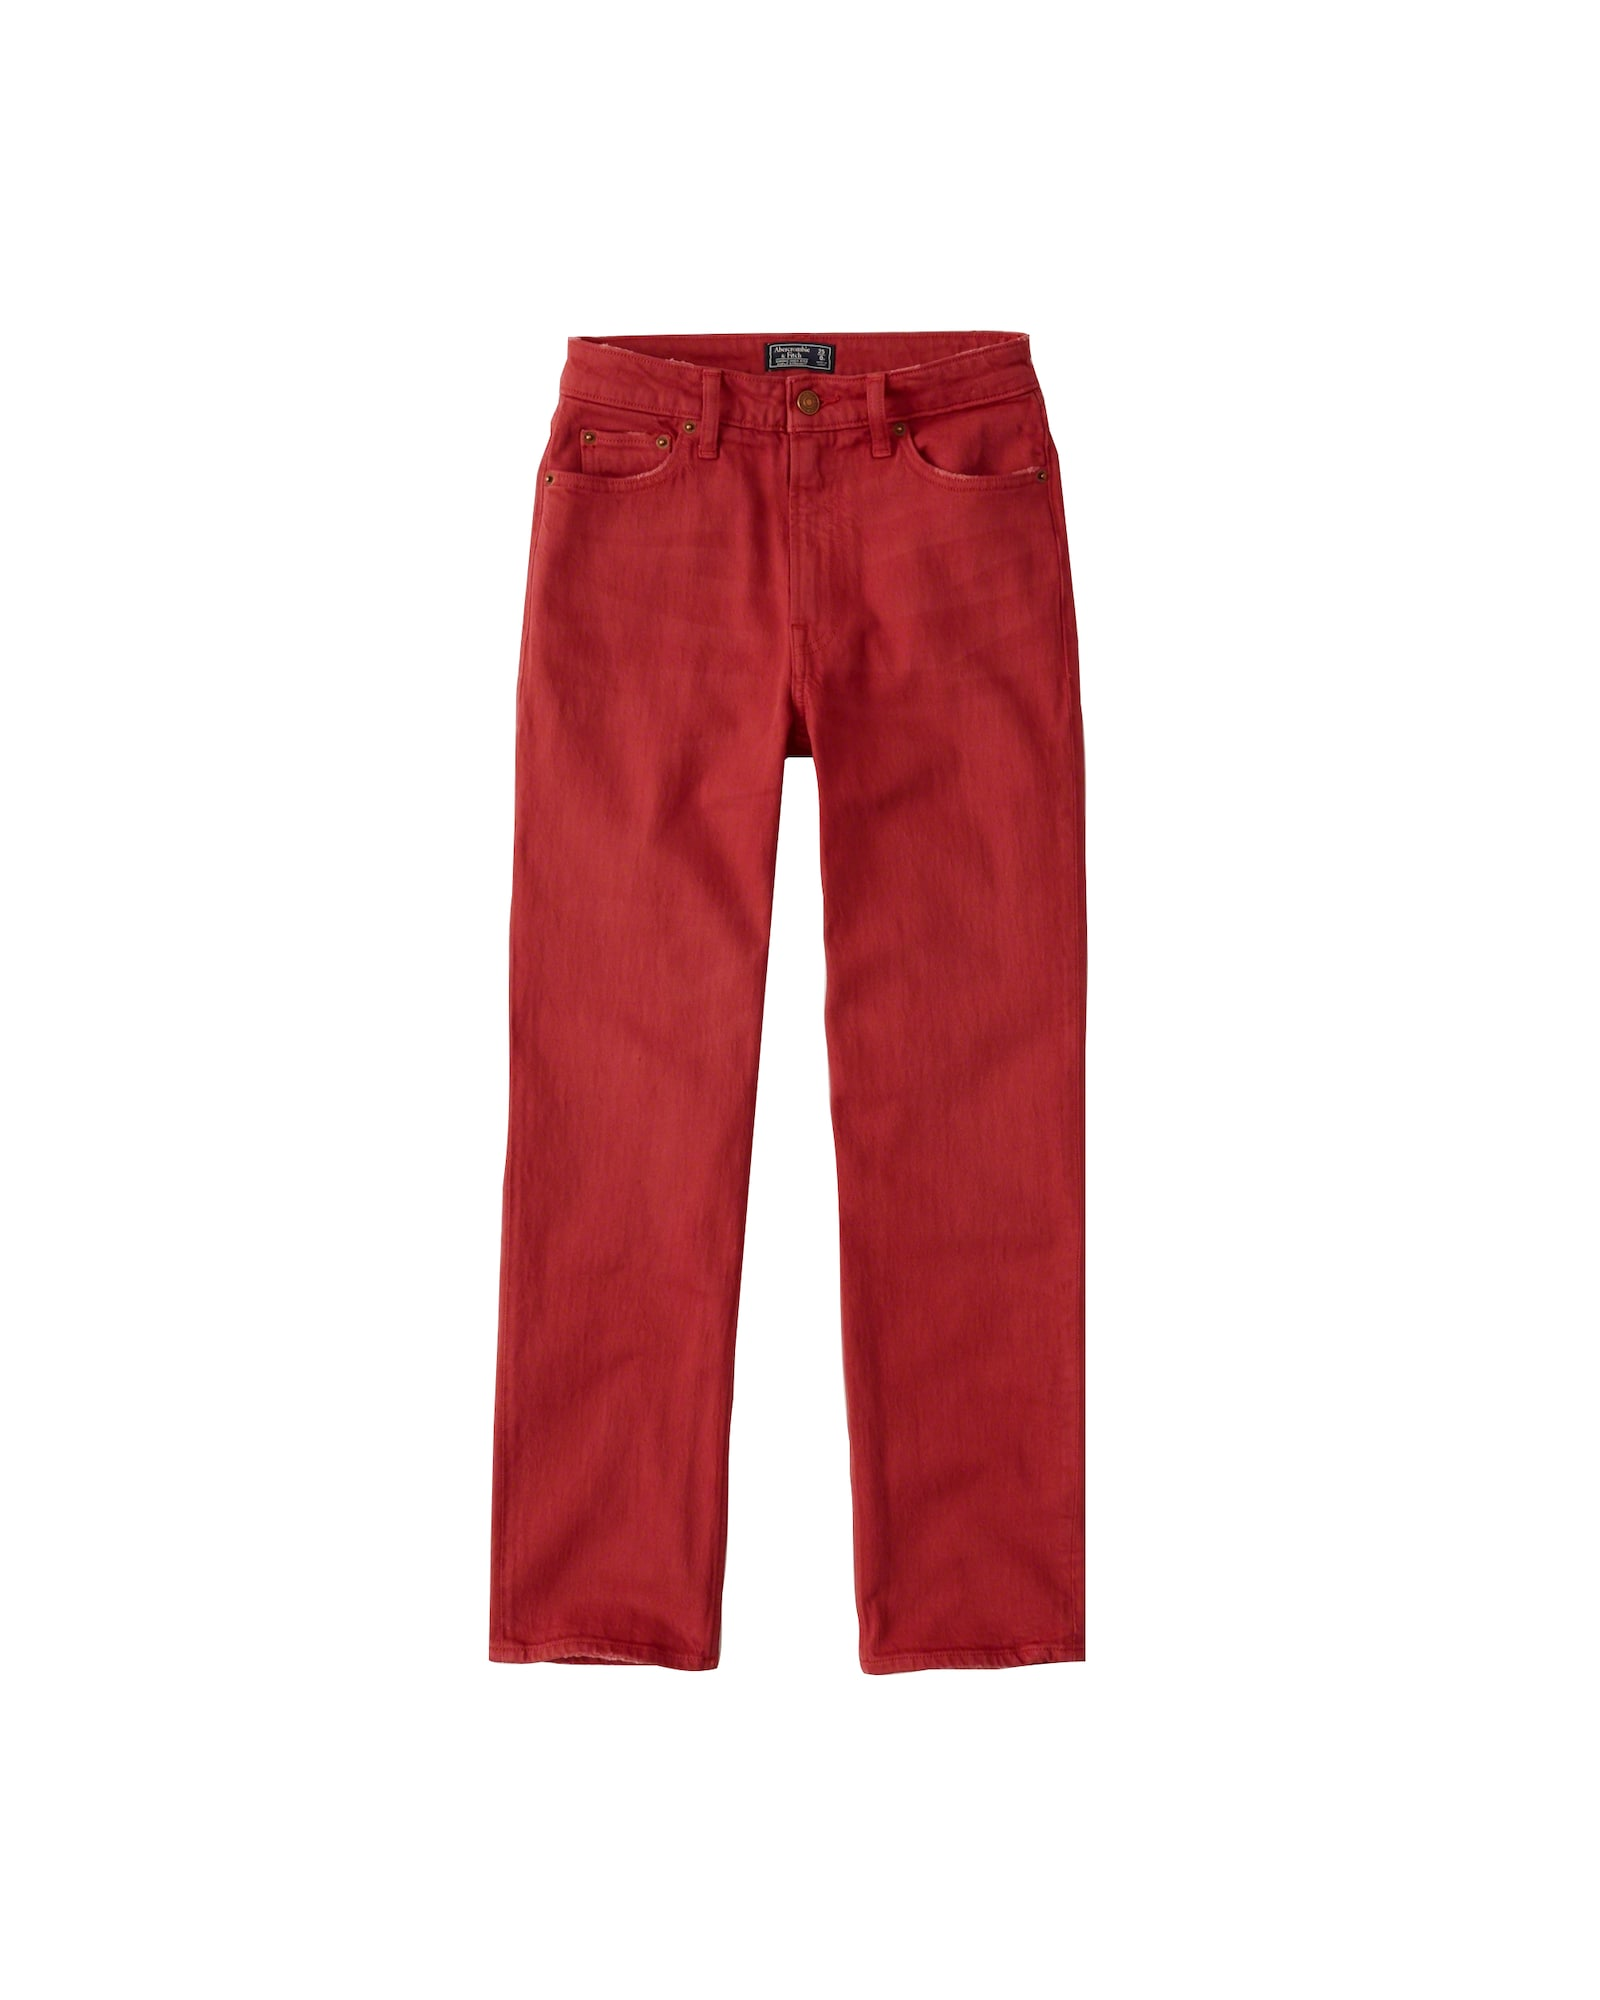 abercrombie & fitch - Hose ´RED SIMONE ANKLE STRAIGHT´